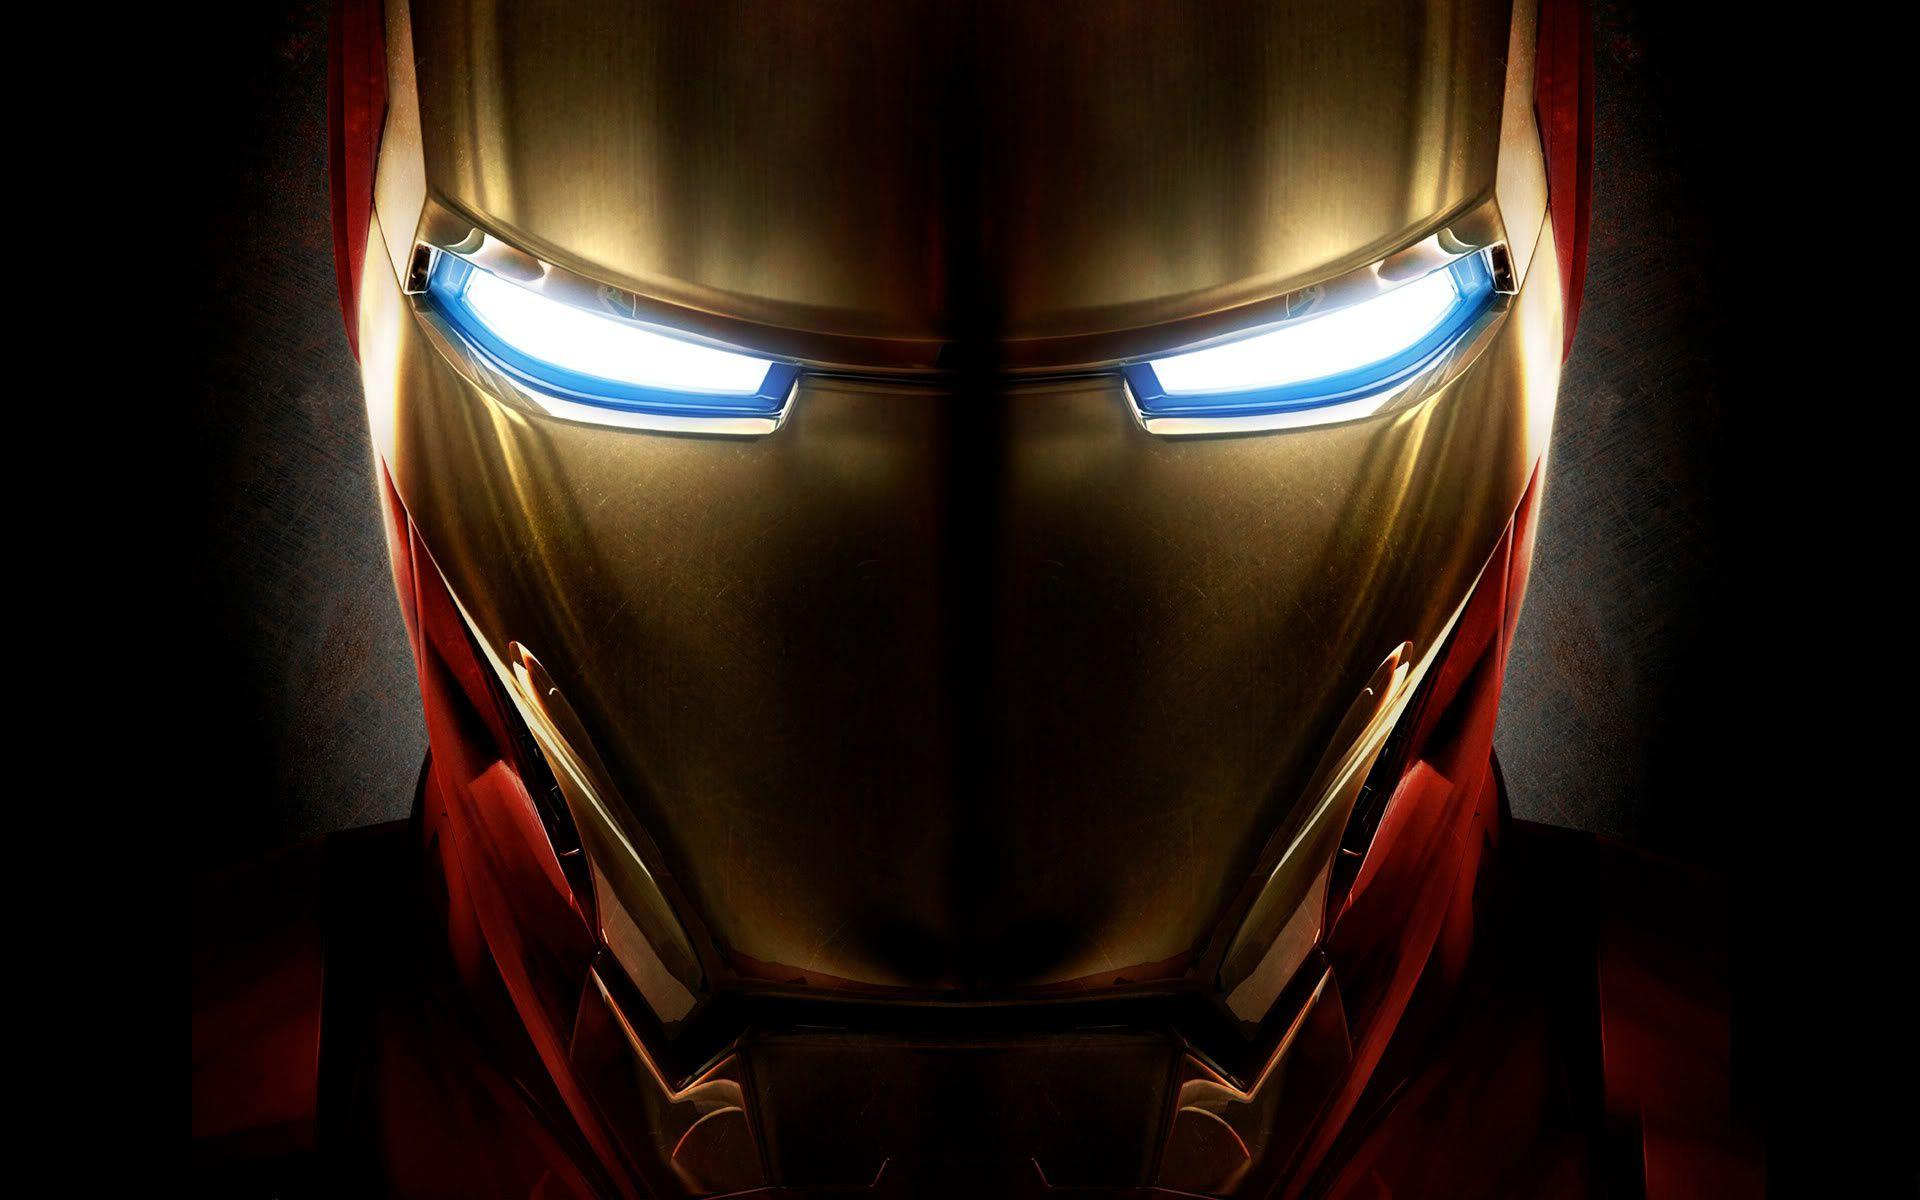 Iron man 3 wallpaper #10039083 (1280x1024) | desktop download.